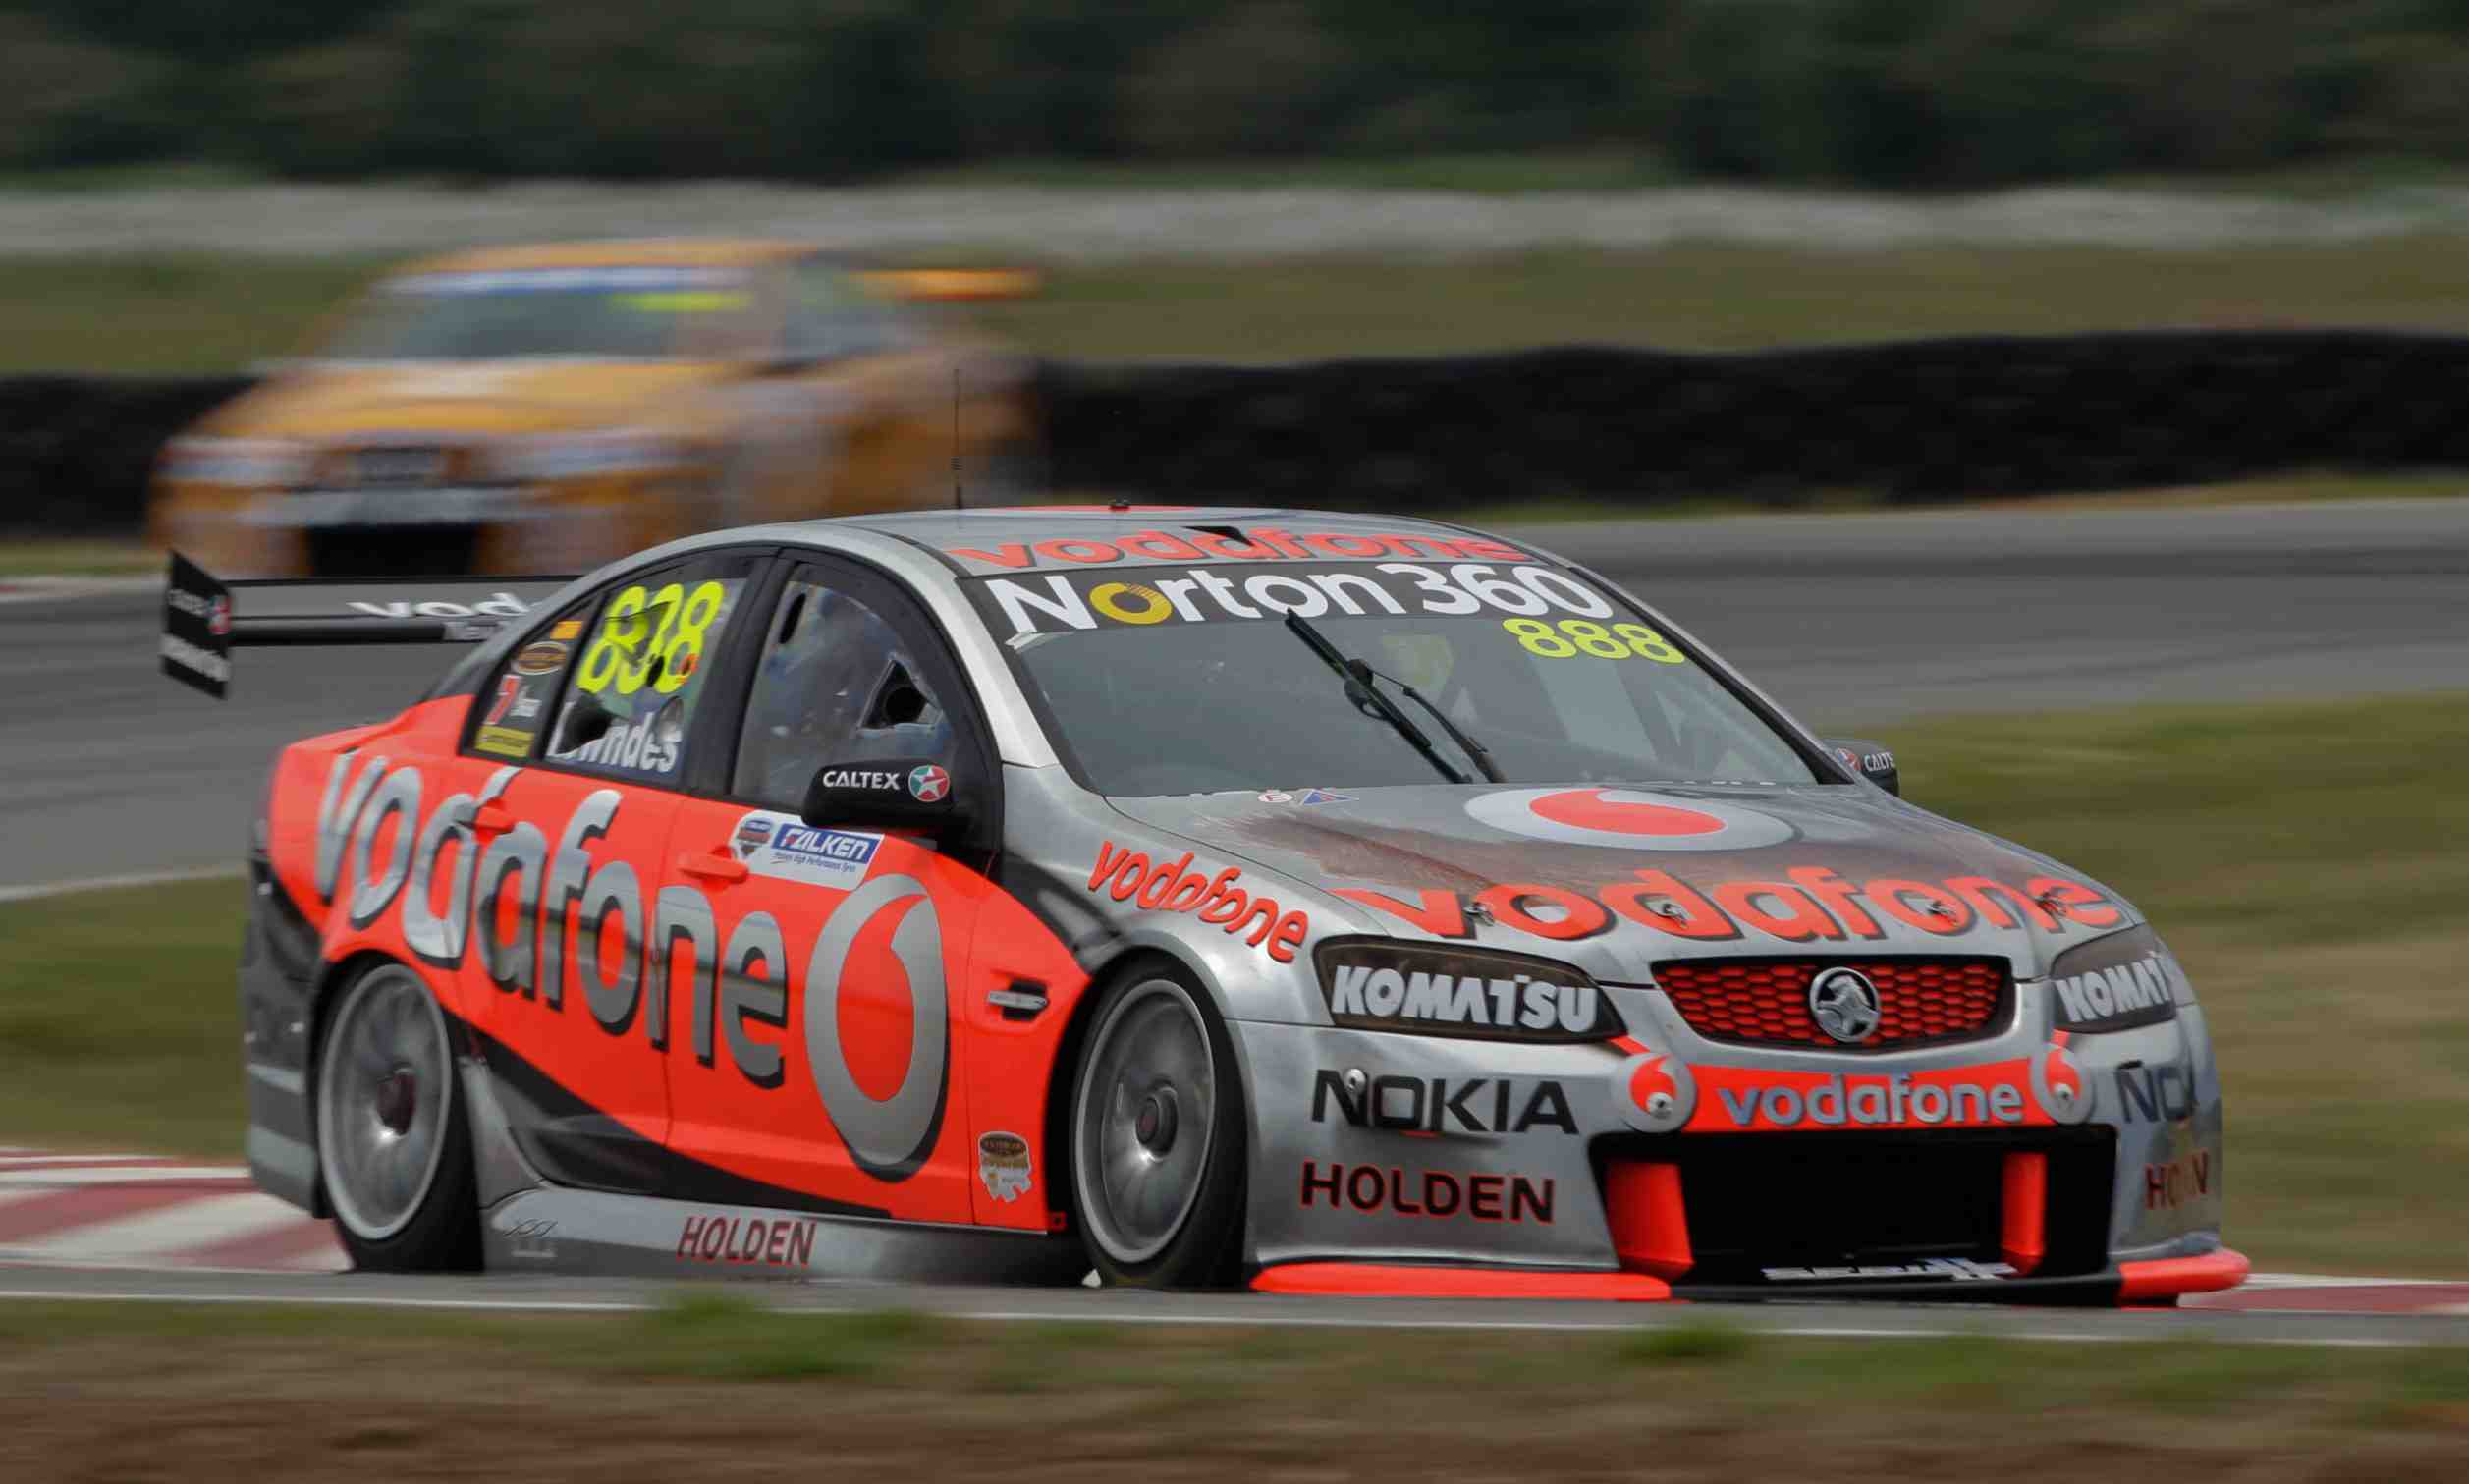 Lowndes wins Race 21 at Symmons Plains